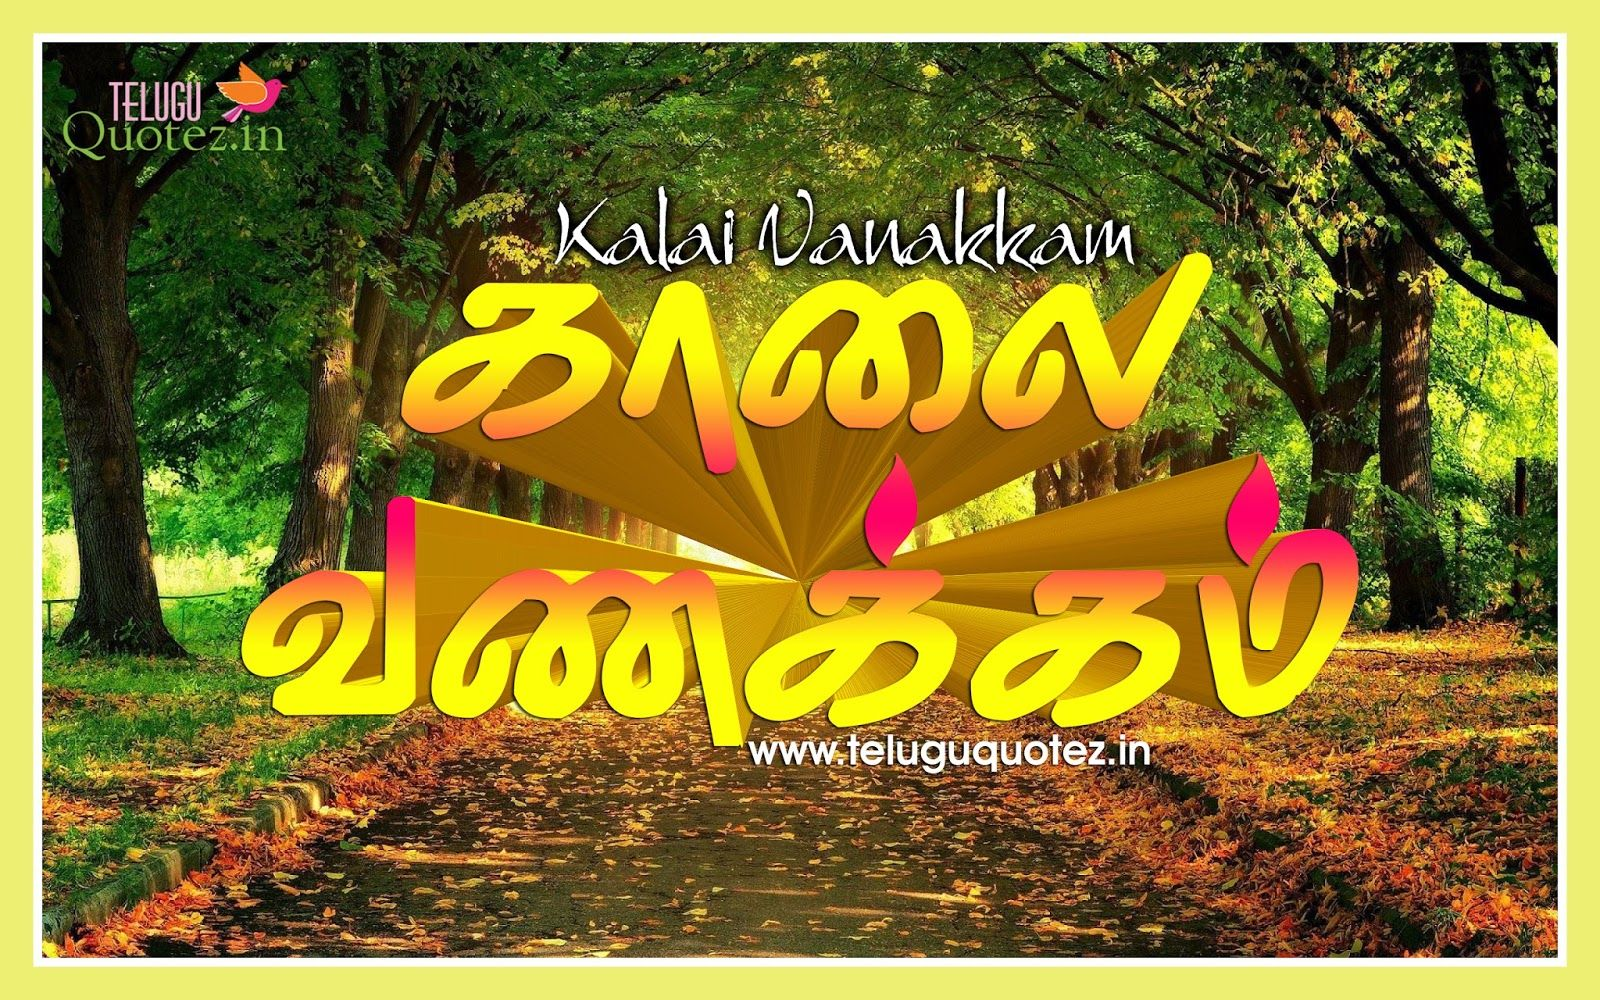 Good-Morning-Quotes-Wallpapers-in-Tamil-Kalai-vanakkam